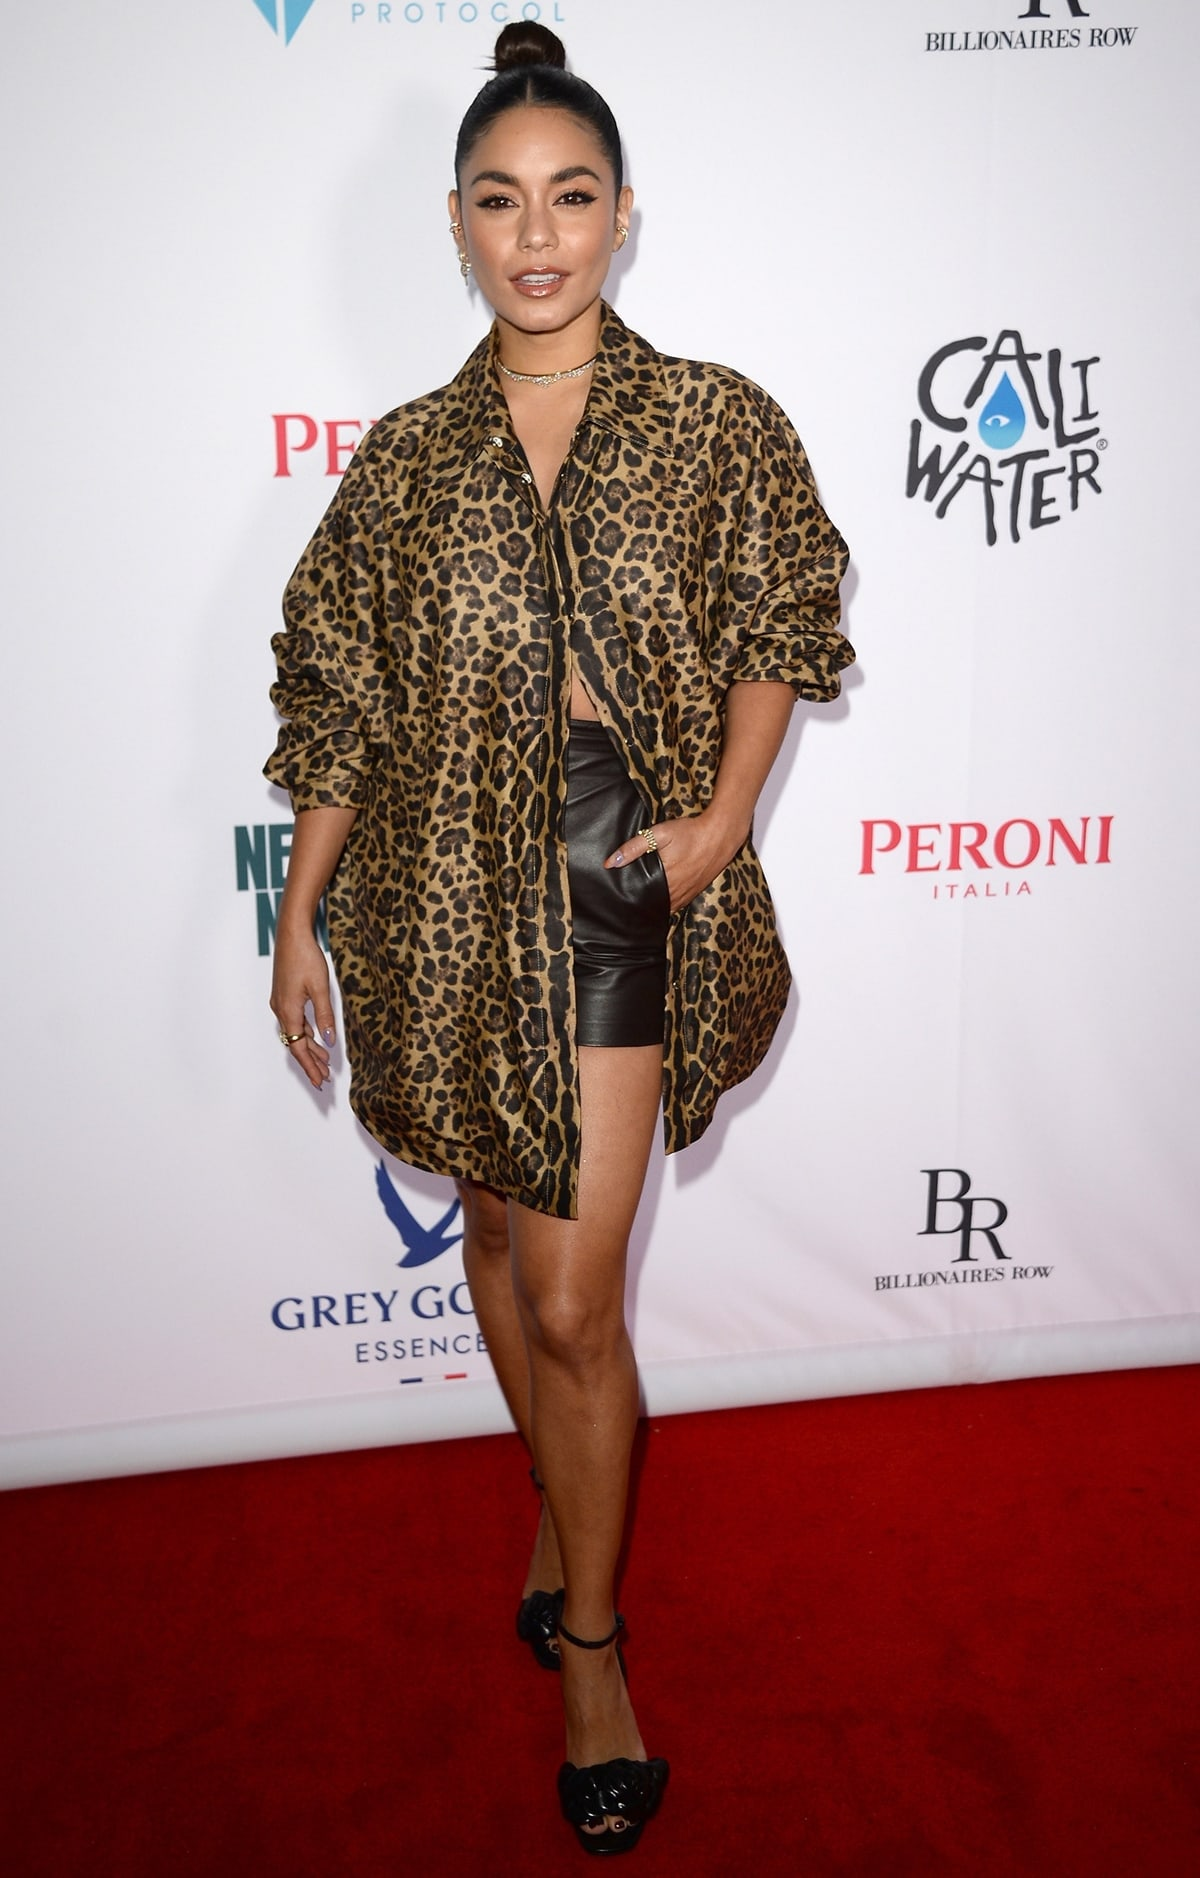 Vanessa Hudgens styled her leopard-print oversized shirt with black leather shorts